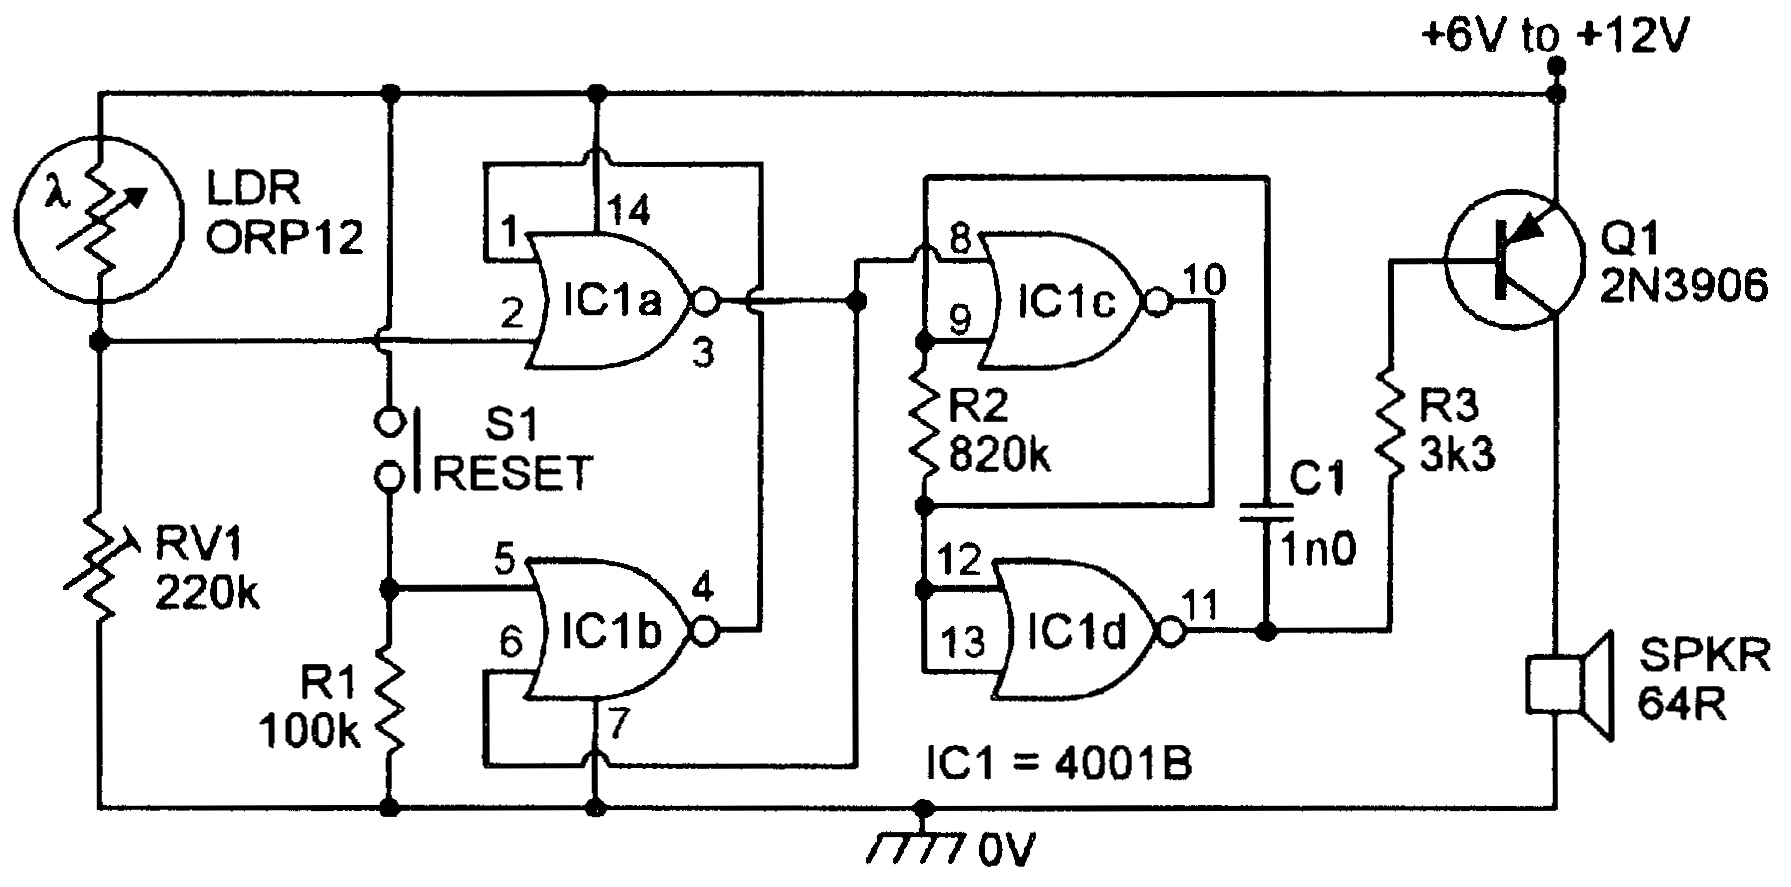 Light Sensitive Circuits Nuts Volts Magazine Ne555 Siren Alarm Indicator Tone Generator Circuit Diagram In Practice The Switching Point Of Each Individual 4001b Ic Is Very Stable And Figure 7 Gives Activated